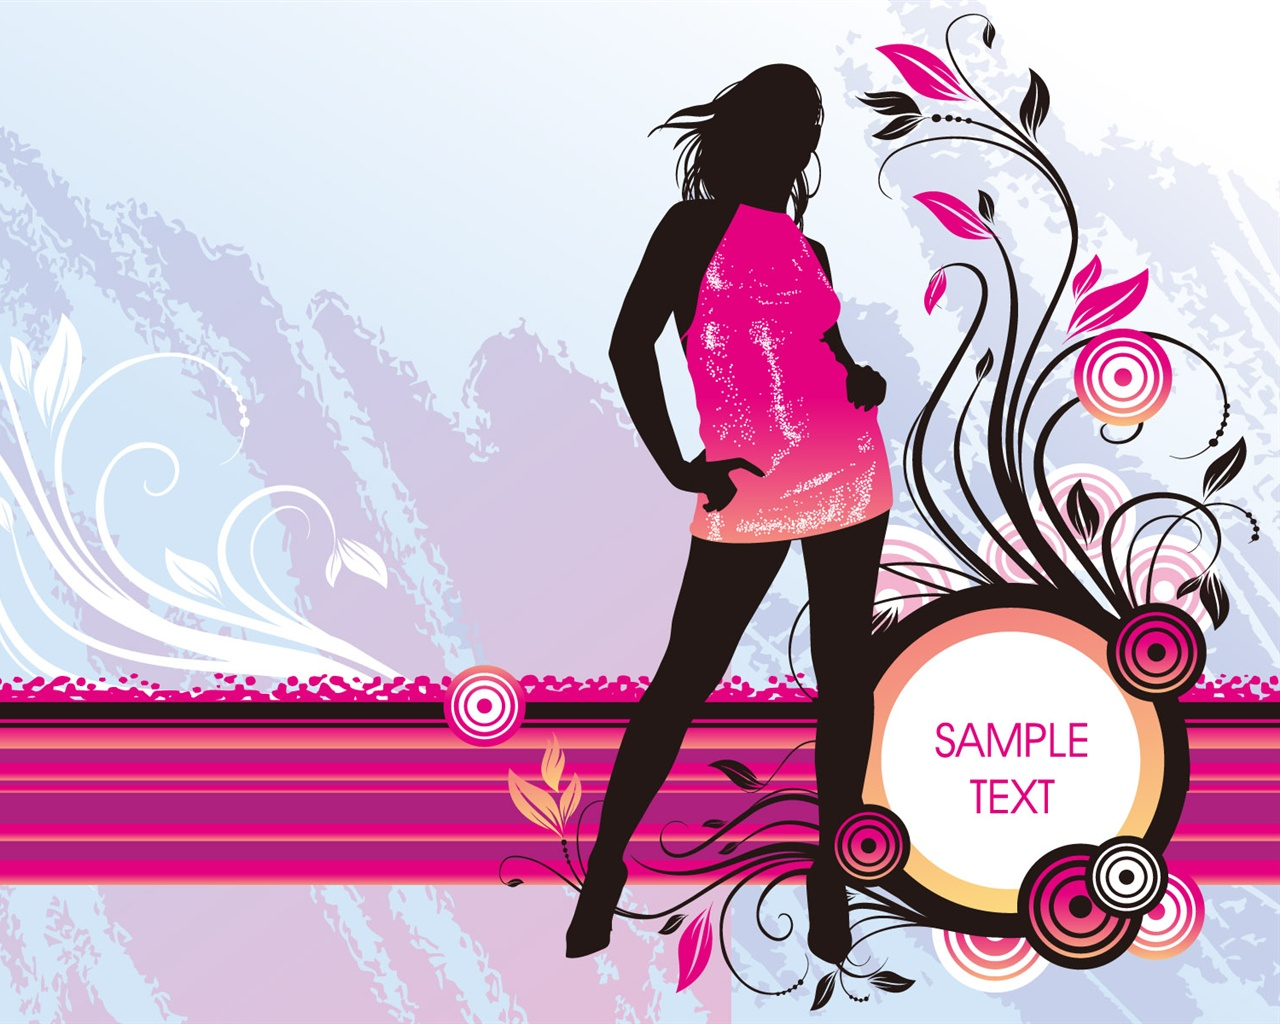 Wallpaper Vector Girl Fashion 1920x1200 HD Picture Image